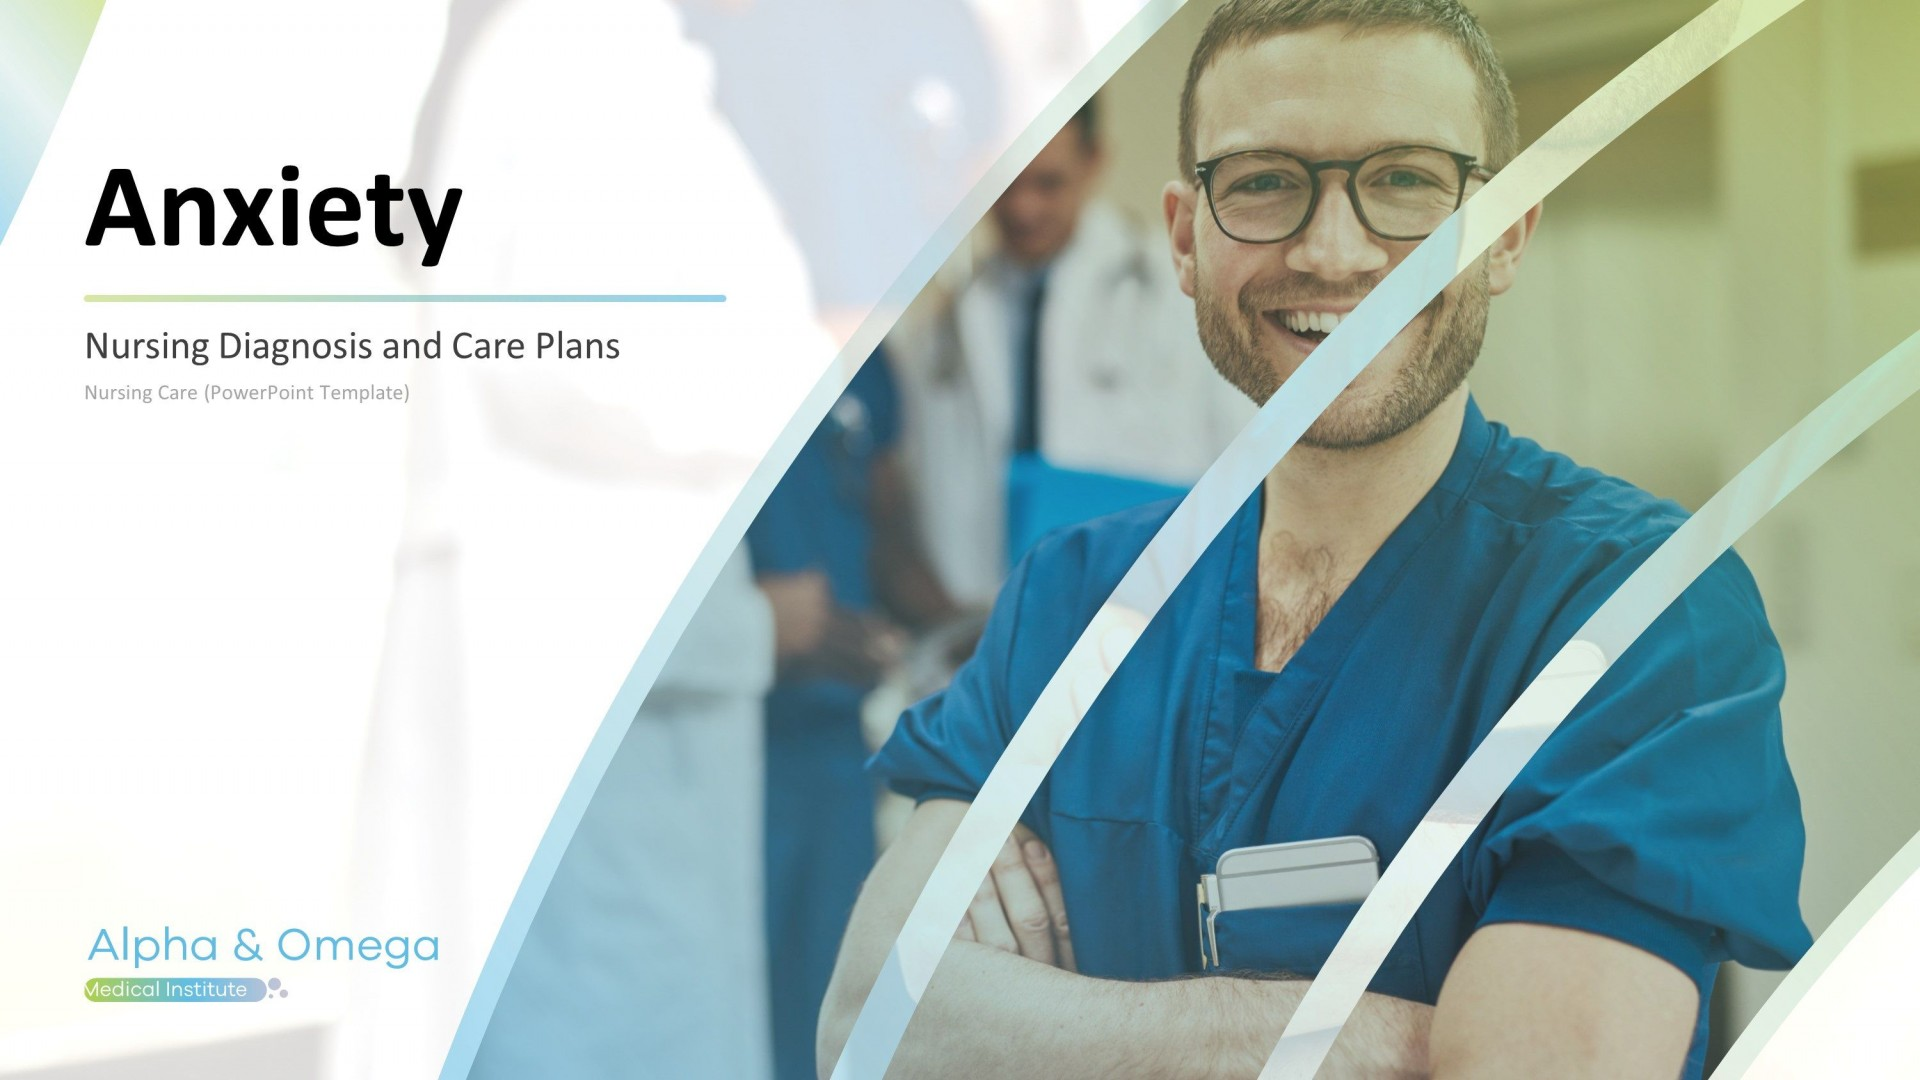 004 Incredible Free Nursing Powerpoint Template High Definition  Education Download1920